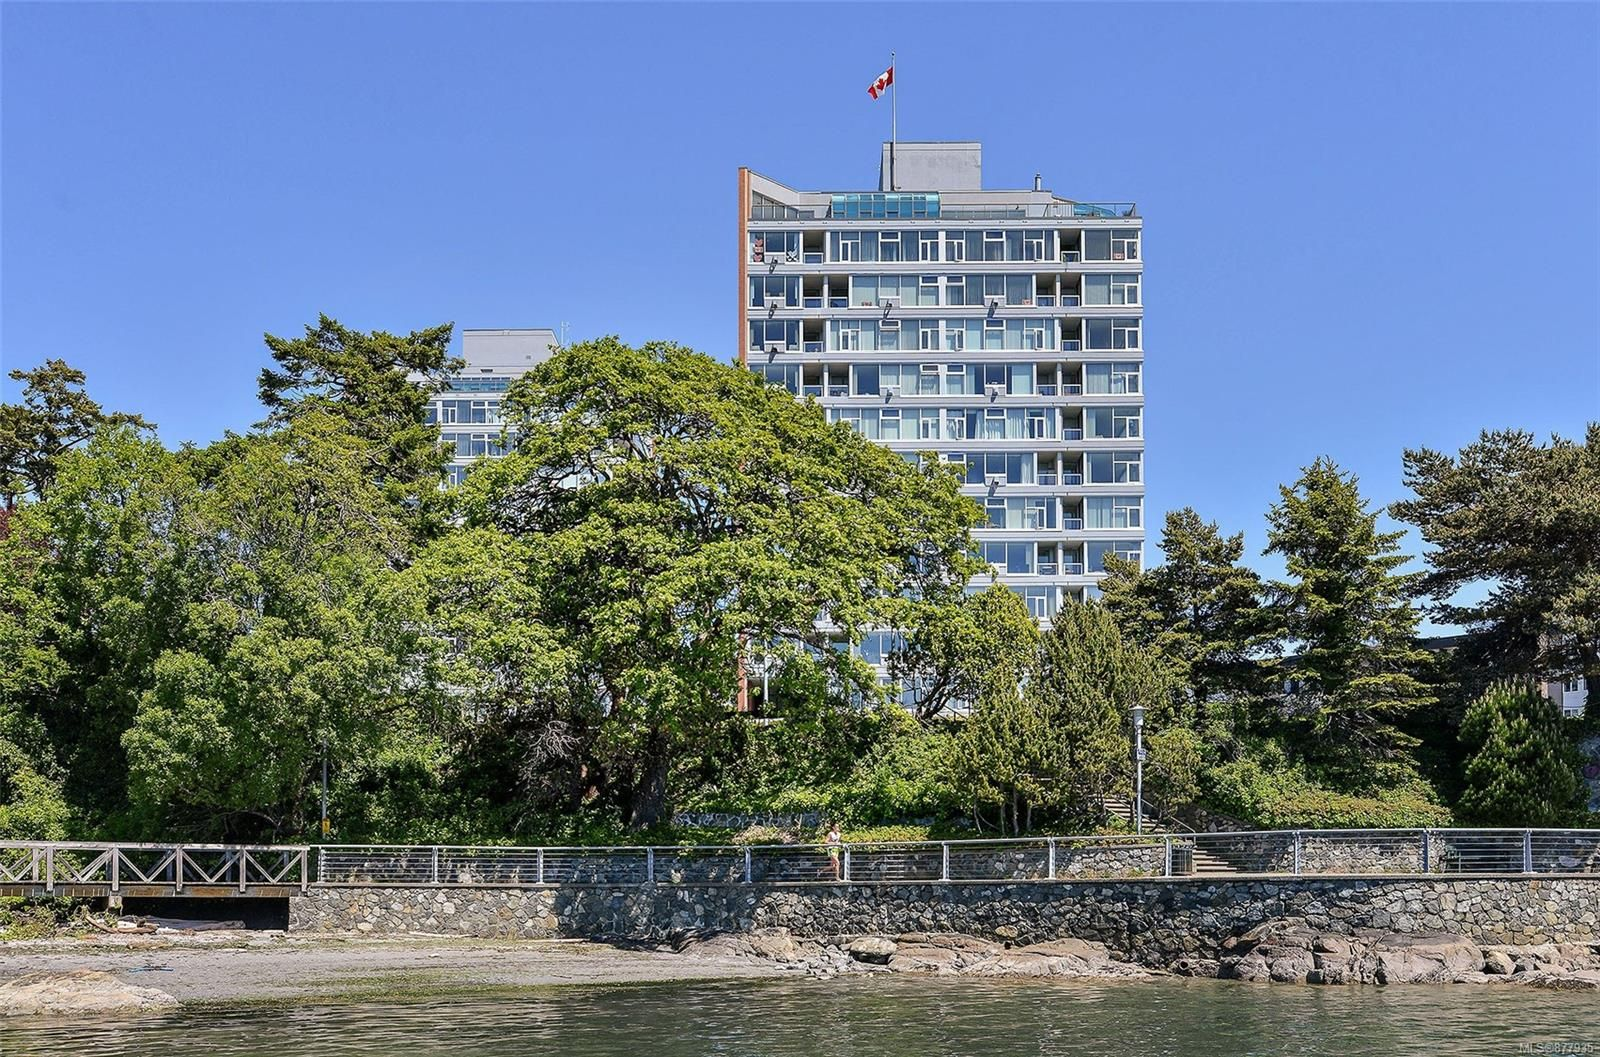 Main Photo: 306 325 Maitland St in : VW Victoria West Condo for sale (Victoria West)  : MLS®# 877935